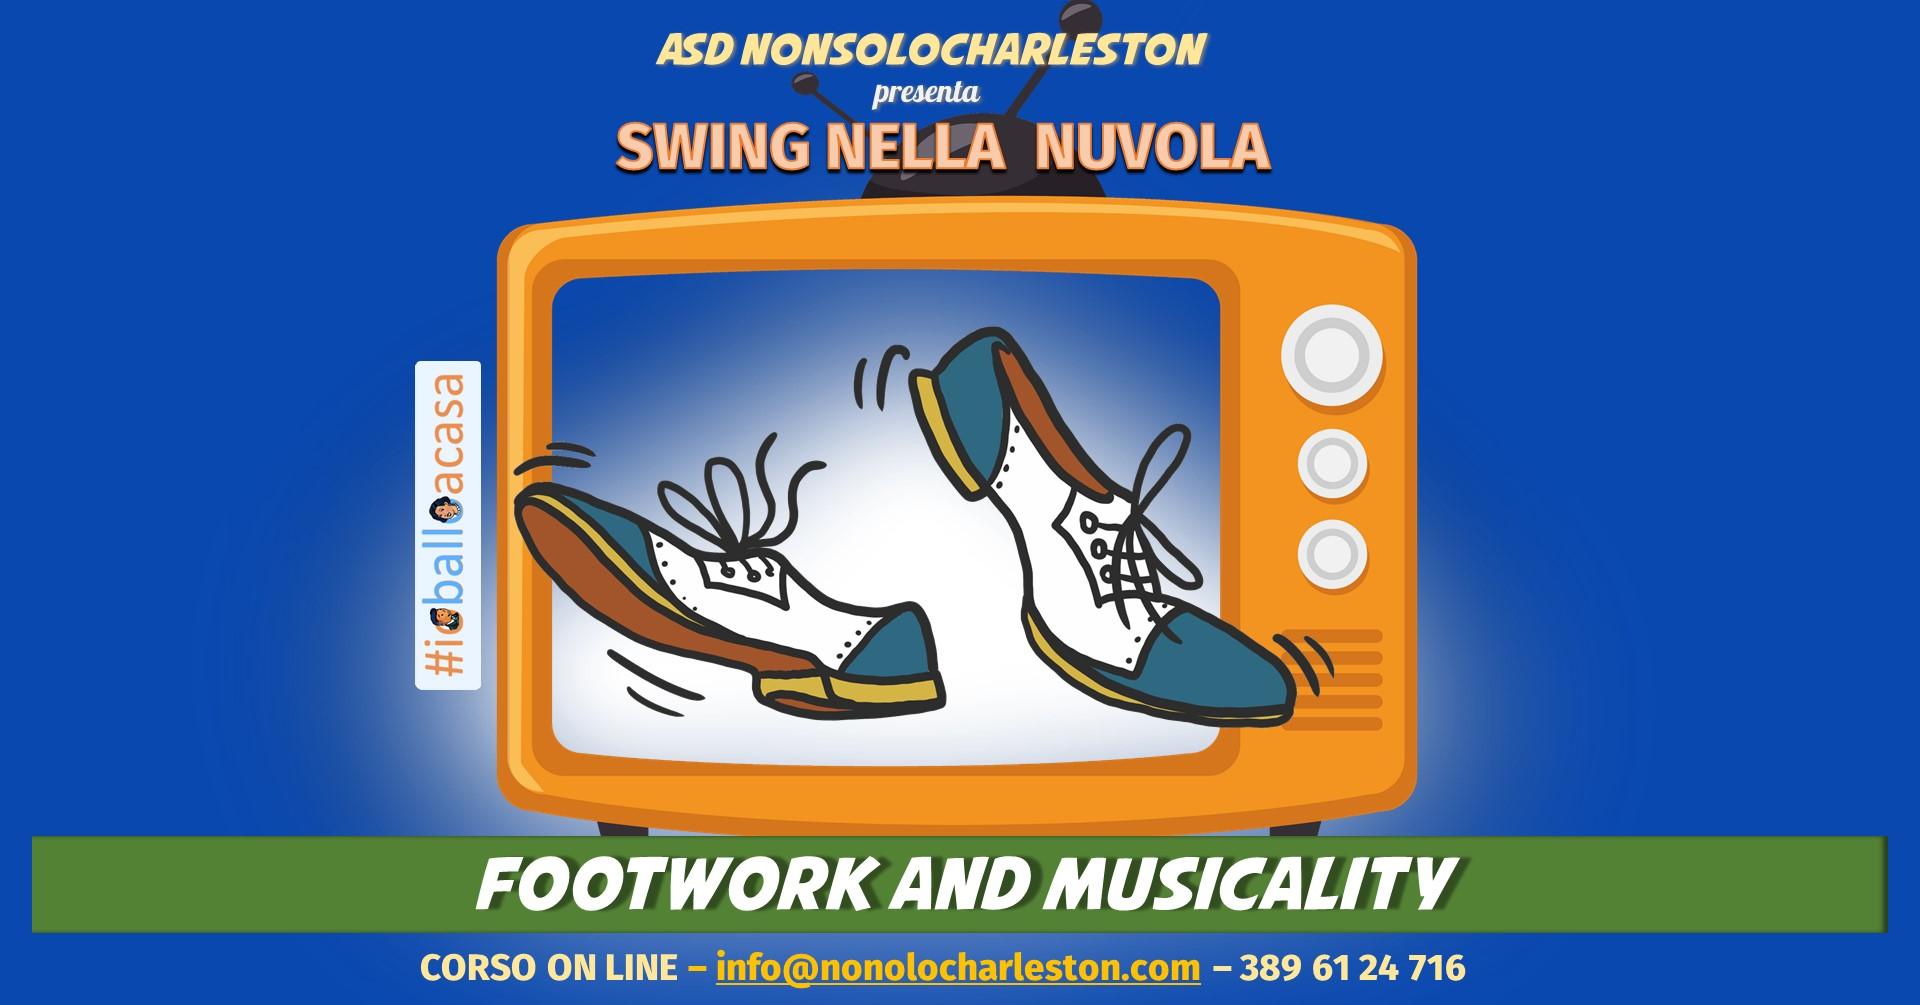 Footwork and musicality